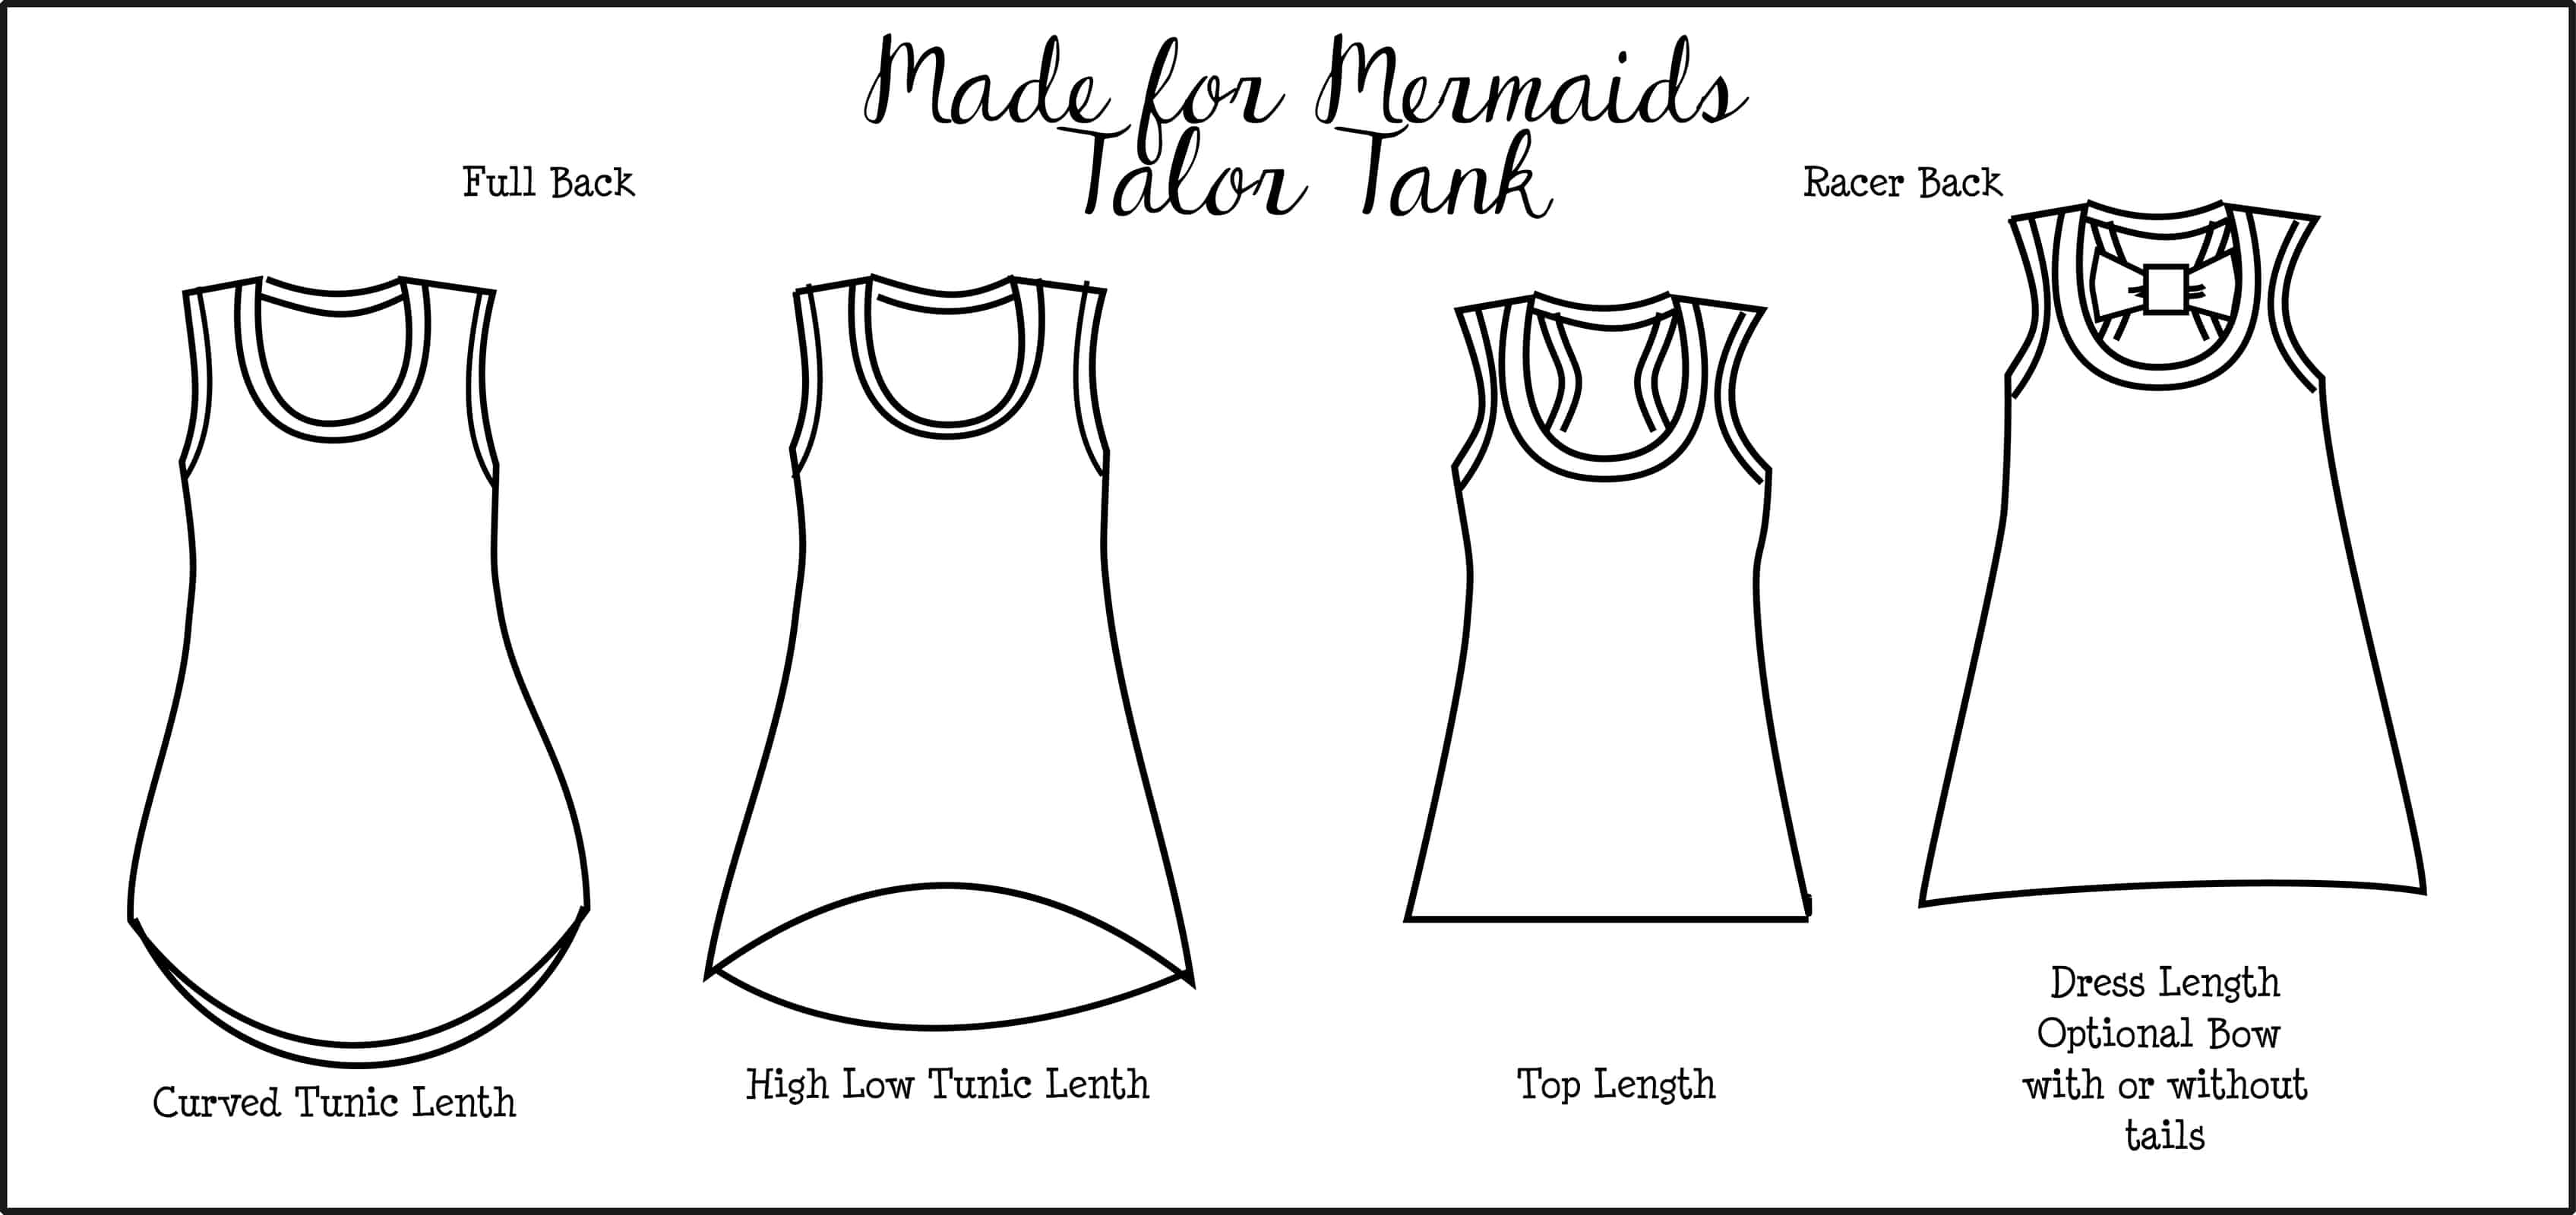 Talor tank top tunic and dress made for mermaids talor tank top tunic and dress jeuxipadfo Gallery